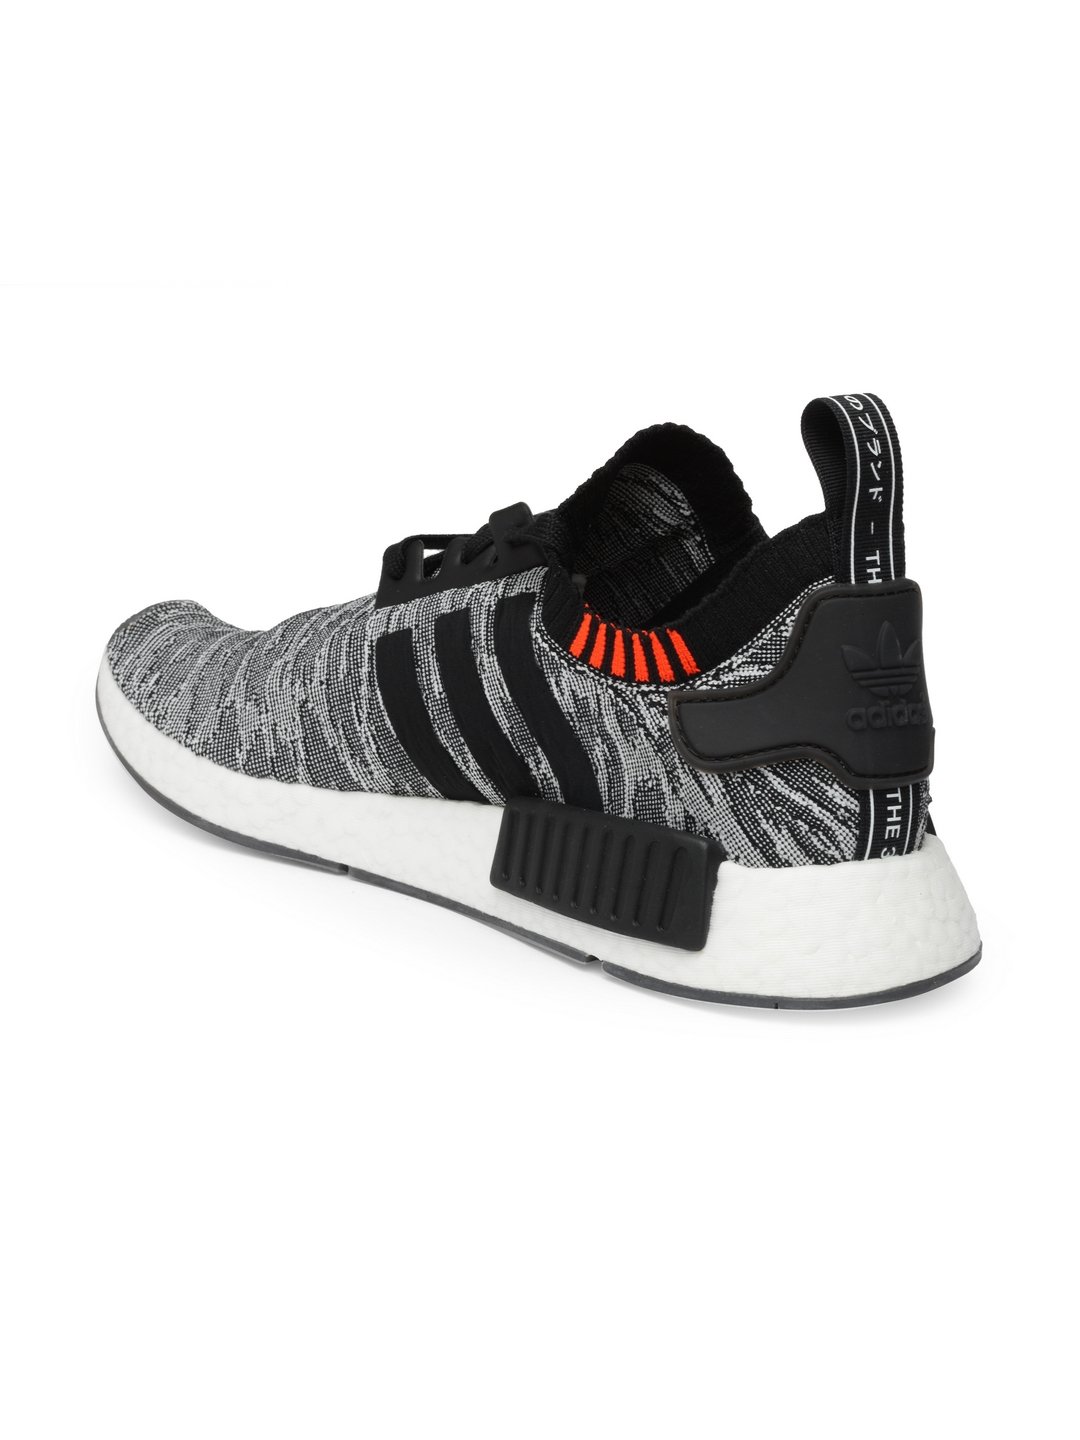 f8e9eeea75f7 Buy ADIDAS Originals Men Black   White NMD R1 PK Patterned Sneakers ...